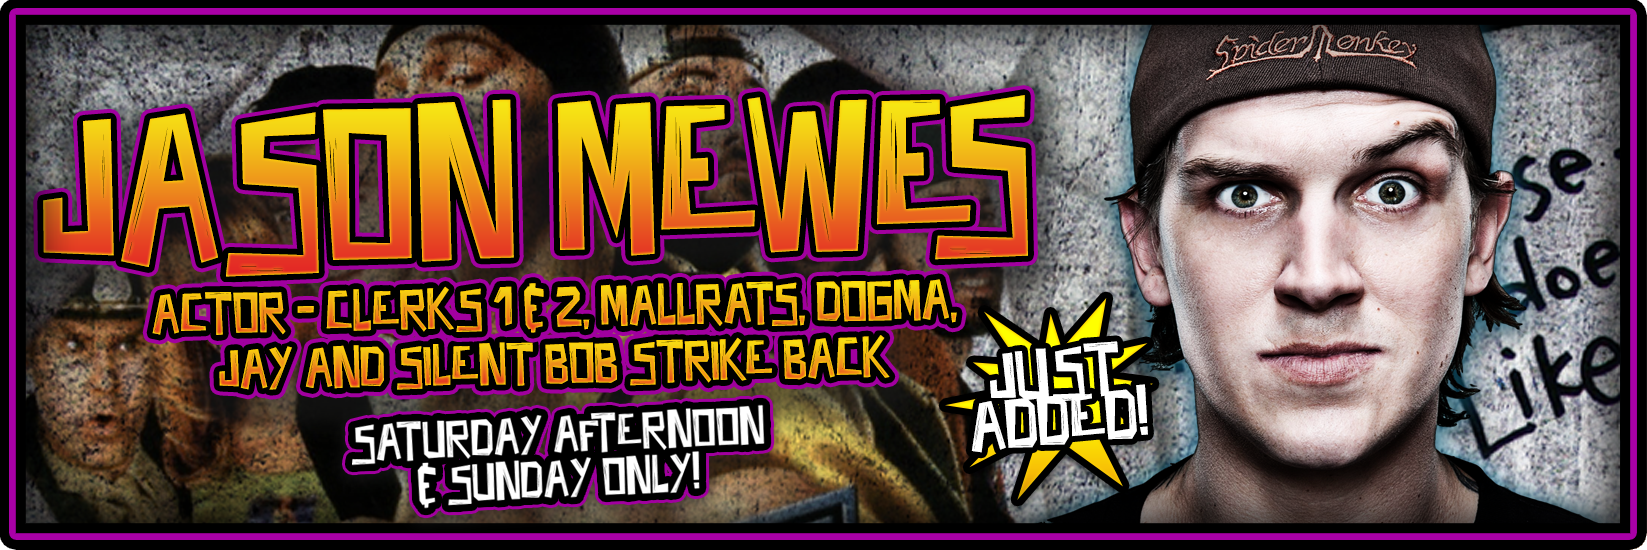 Jason-Mewes-Banner.png